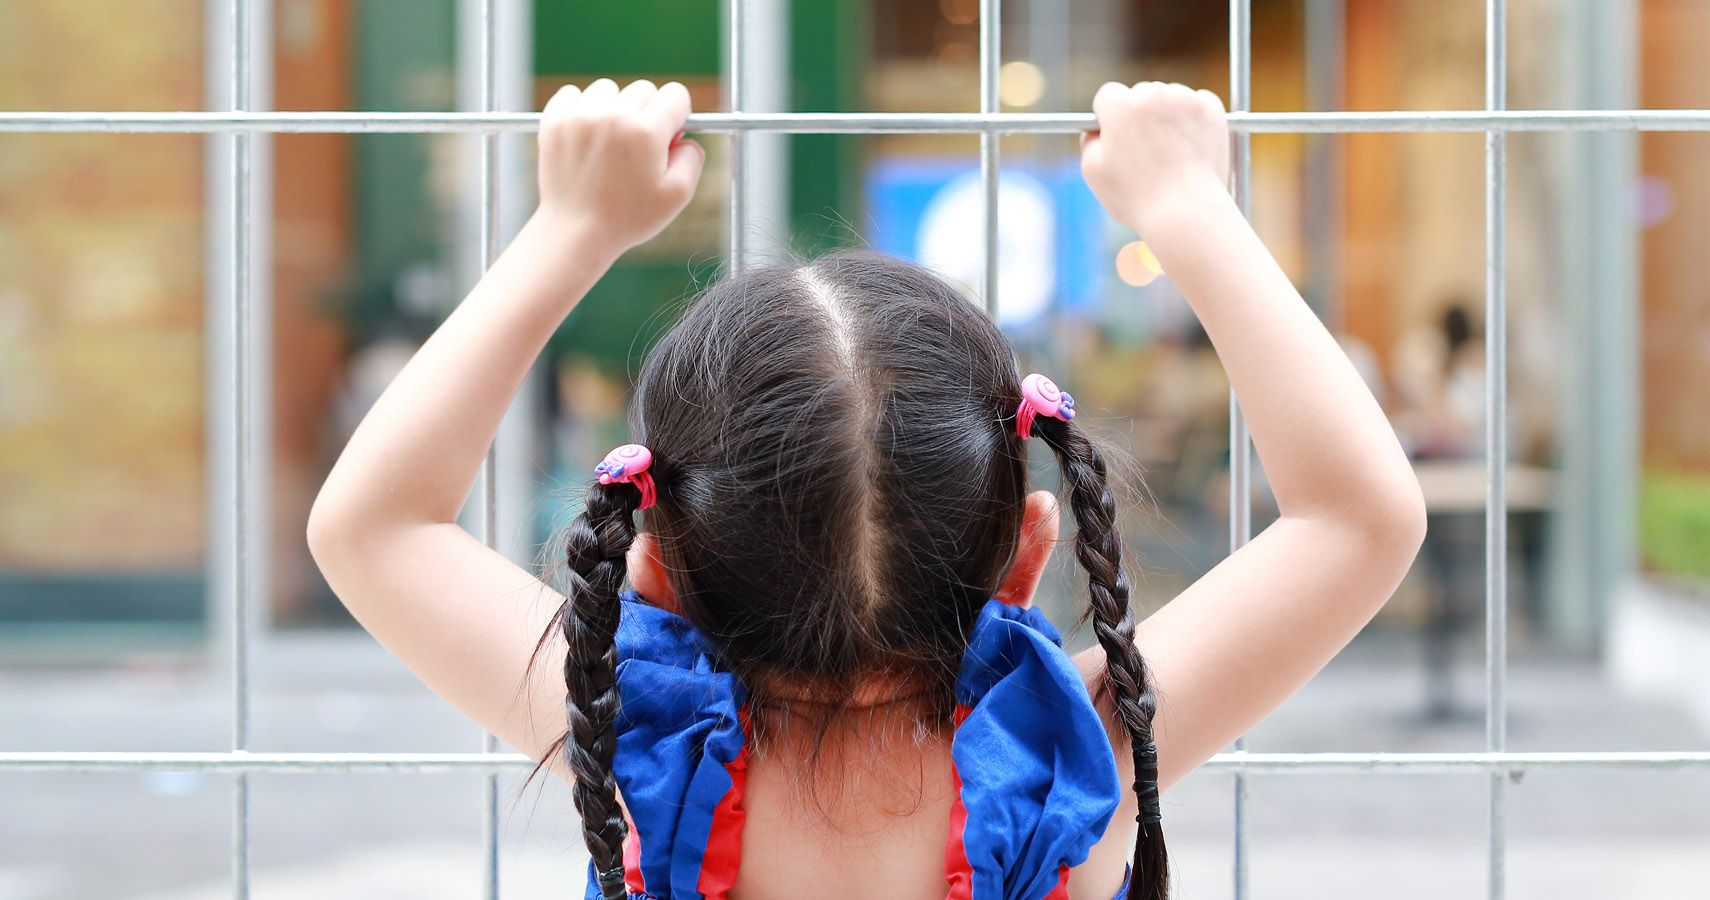 545 Kids Separated From Families Have Yet To Reunite   Moms.com